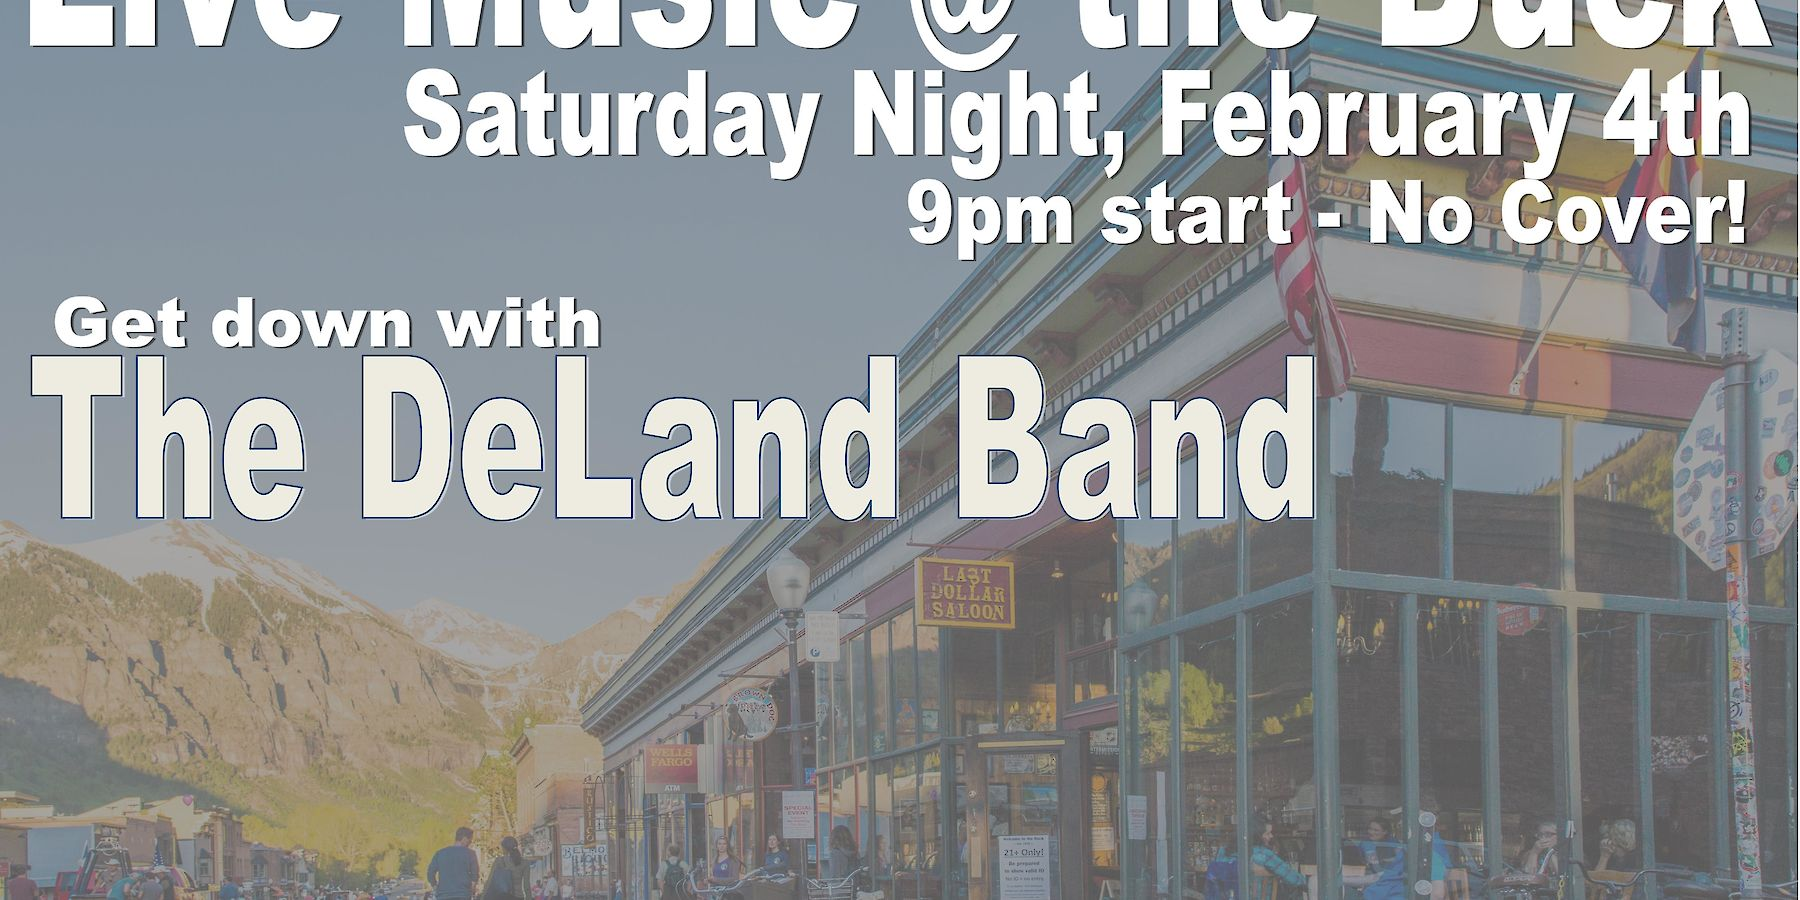 DeLand Band February 4th